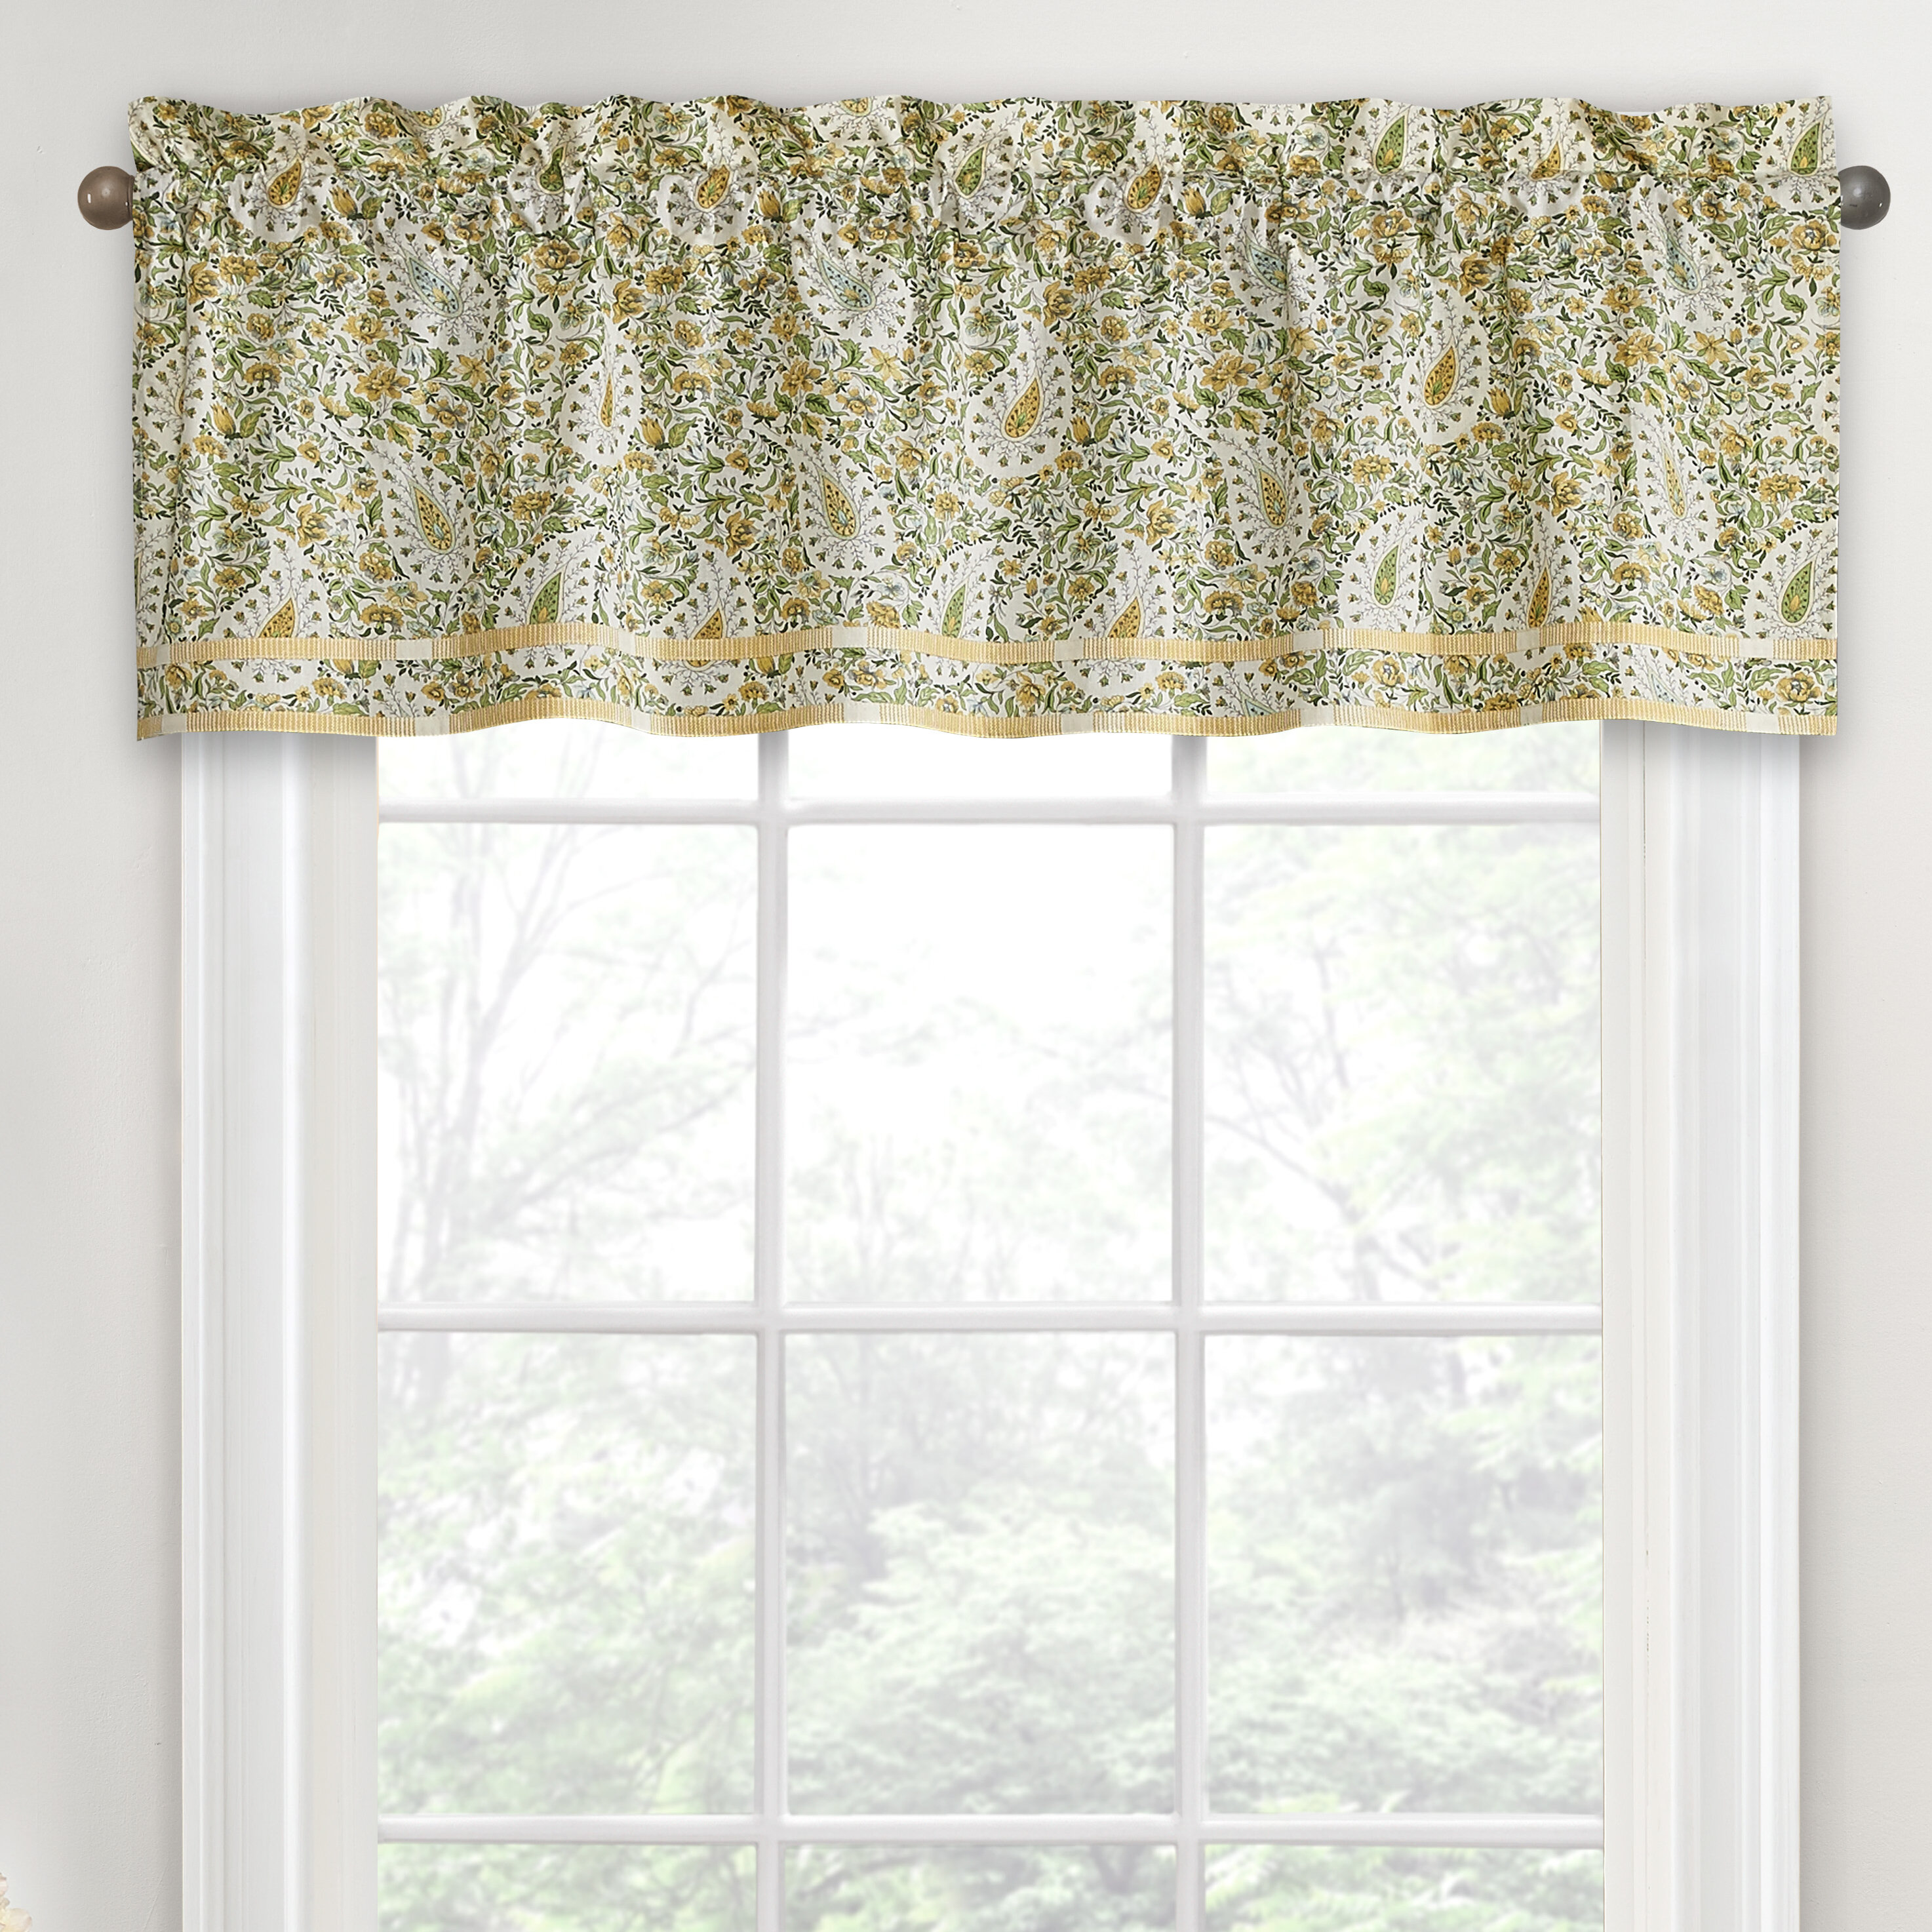 spaces drapes a valances luxurious fabrics including window make valance variety length to styles of choose well and suited curtains from treatments milwaukee full curtain wi especially large